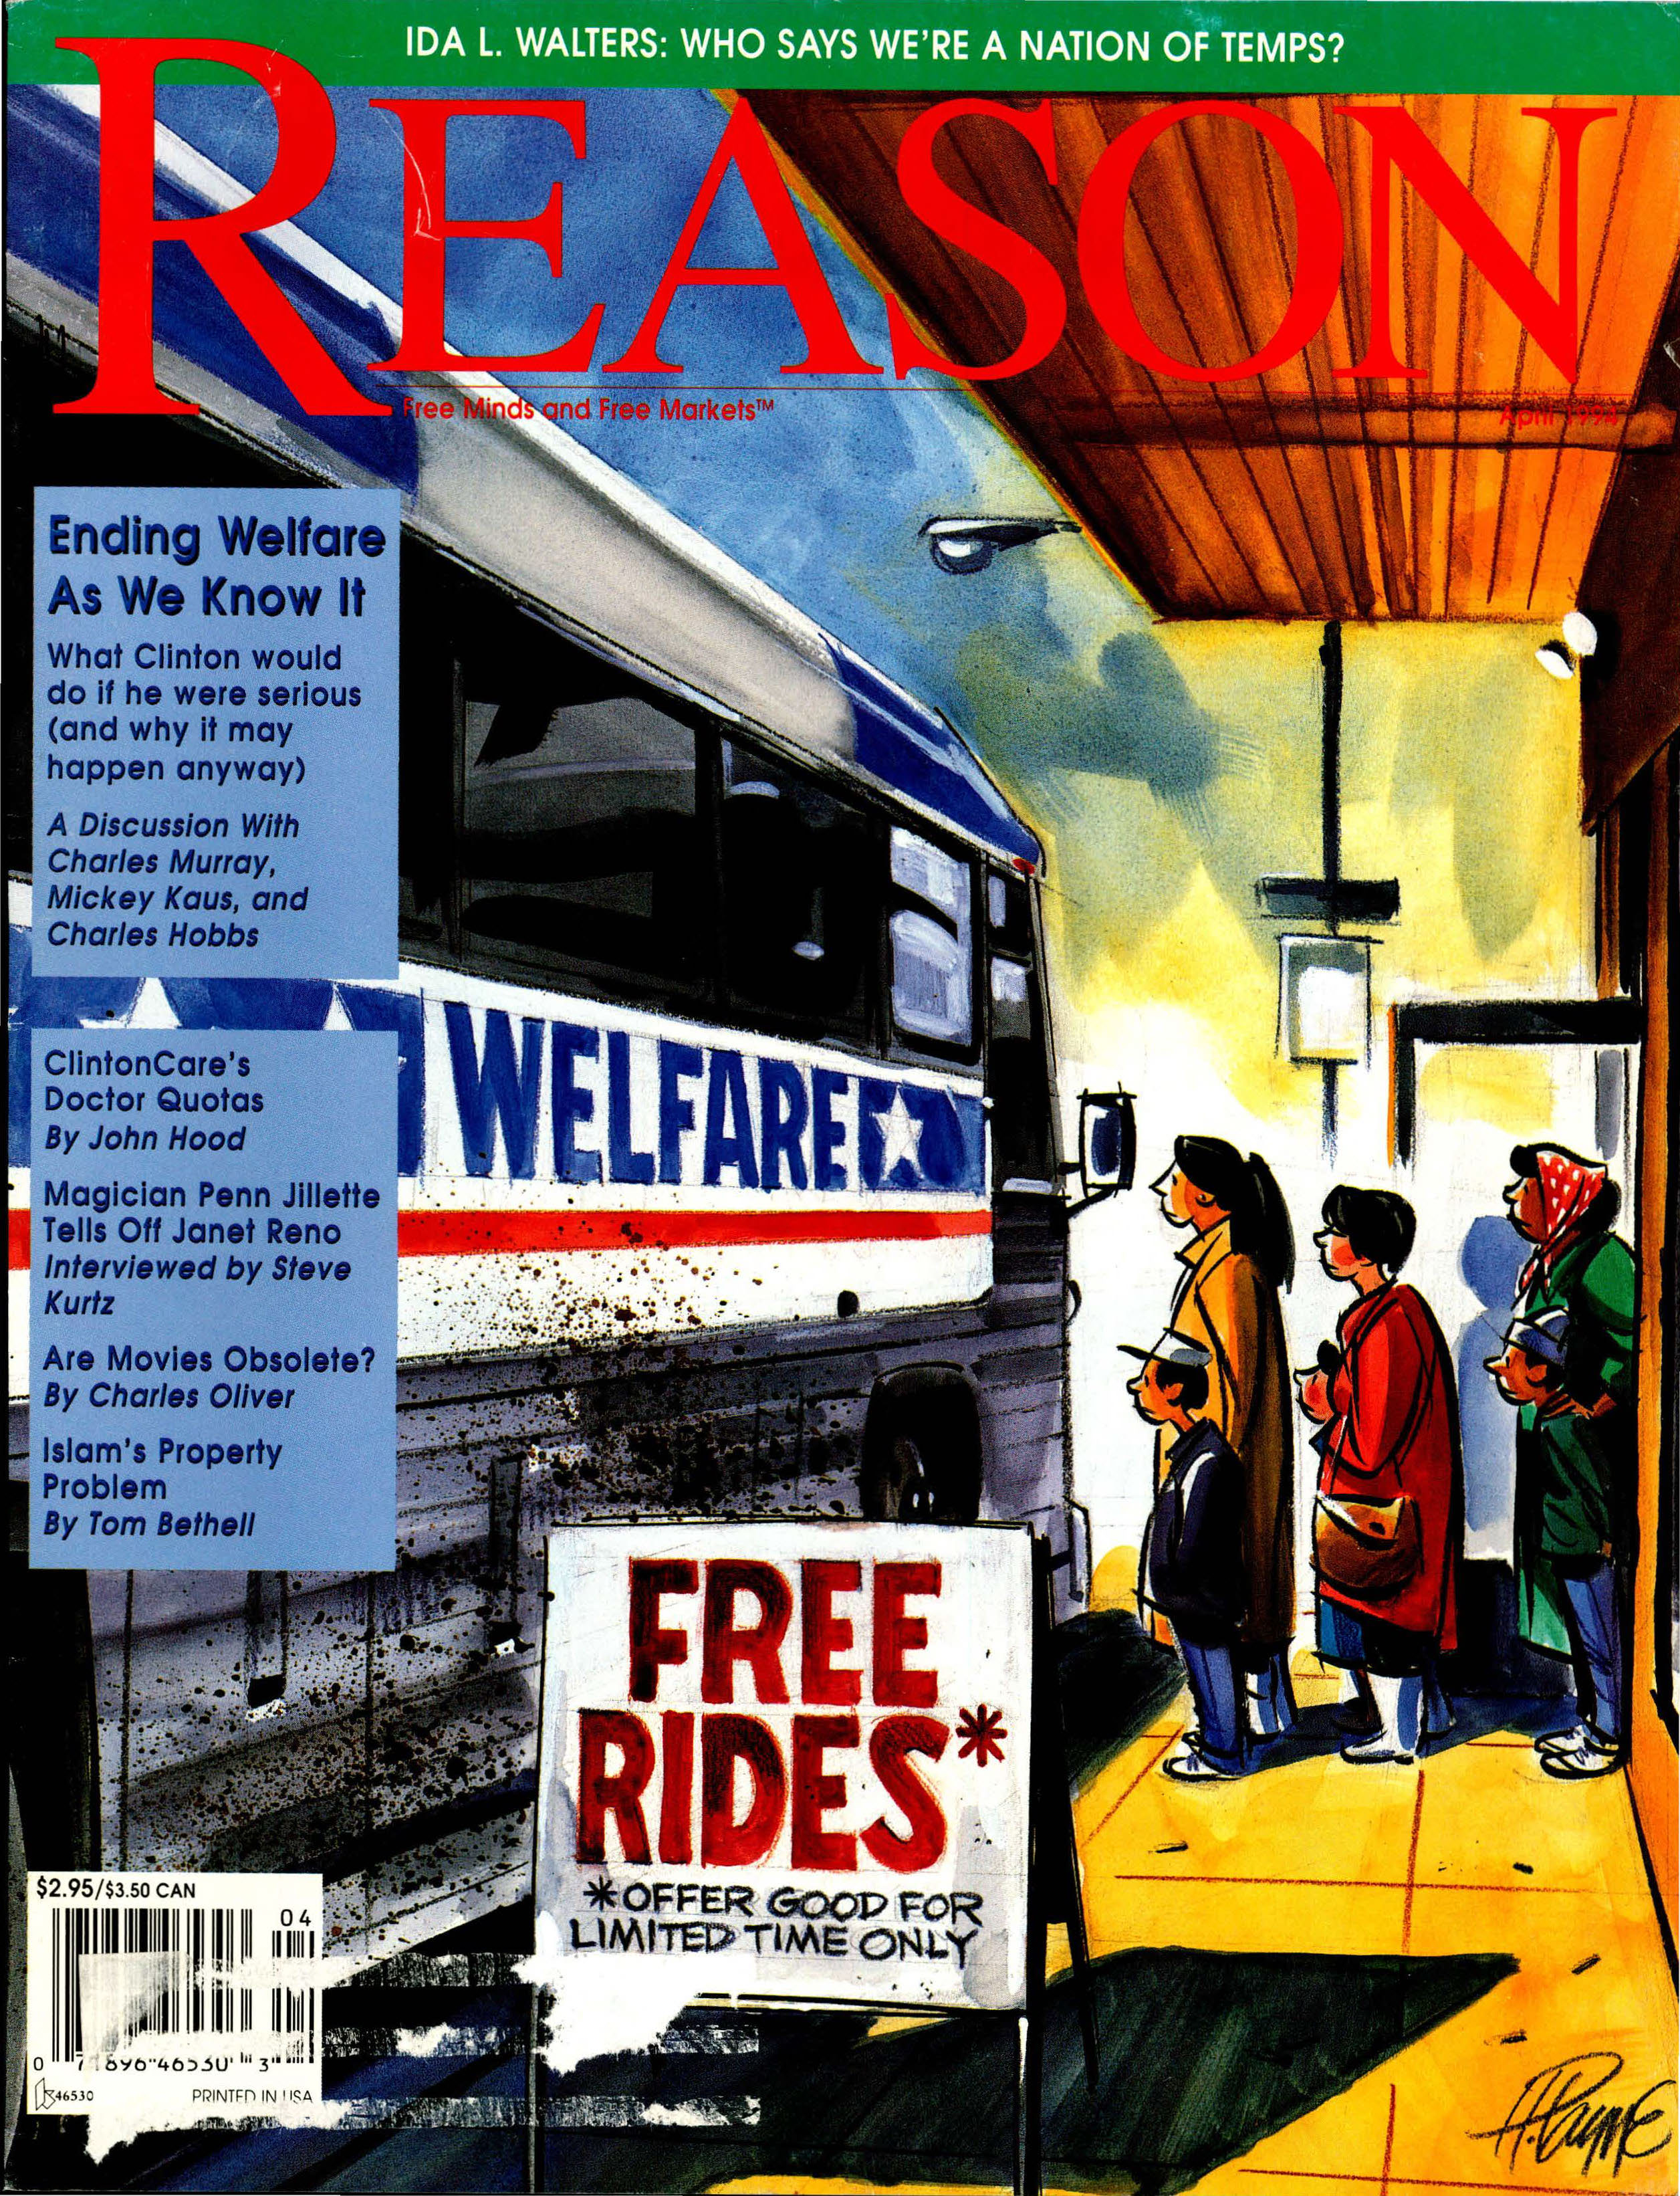 Reason Magazine, April 1994 cover image